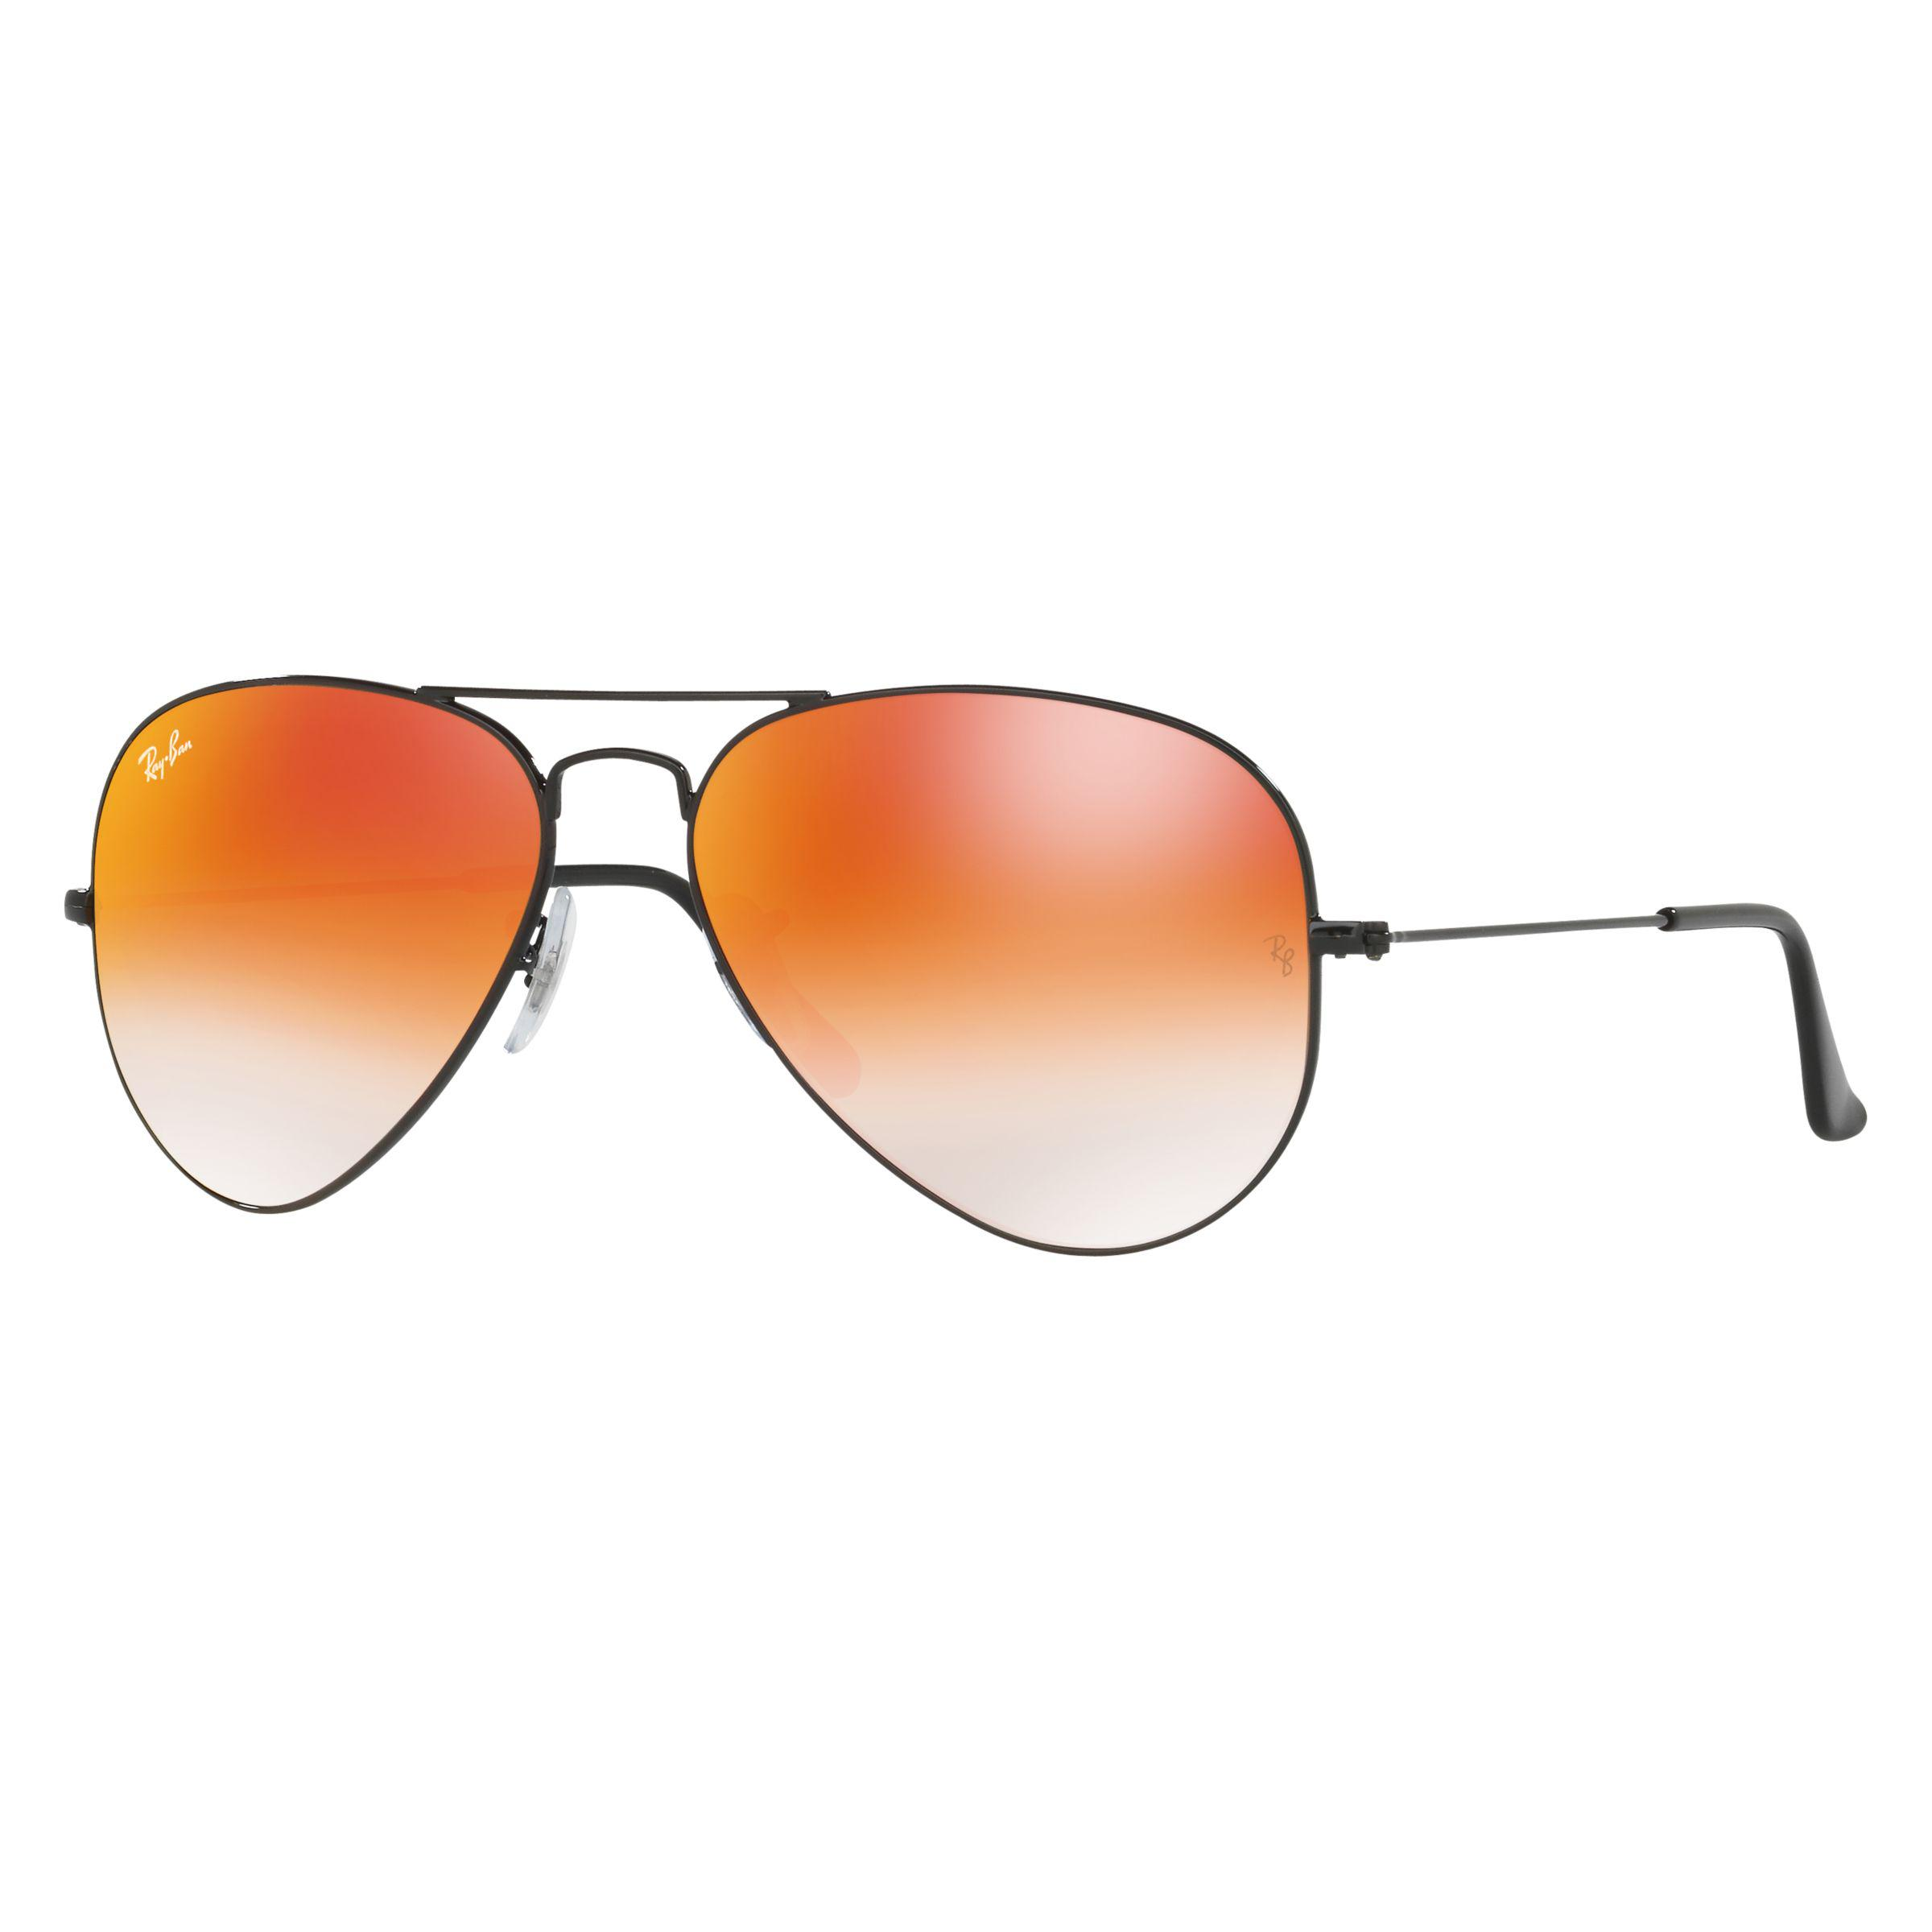 2f202f120a Ray-Ban Rb3025 Aviator Sunglasses in Black - Lyst